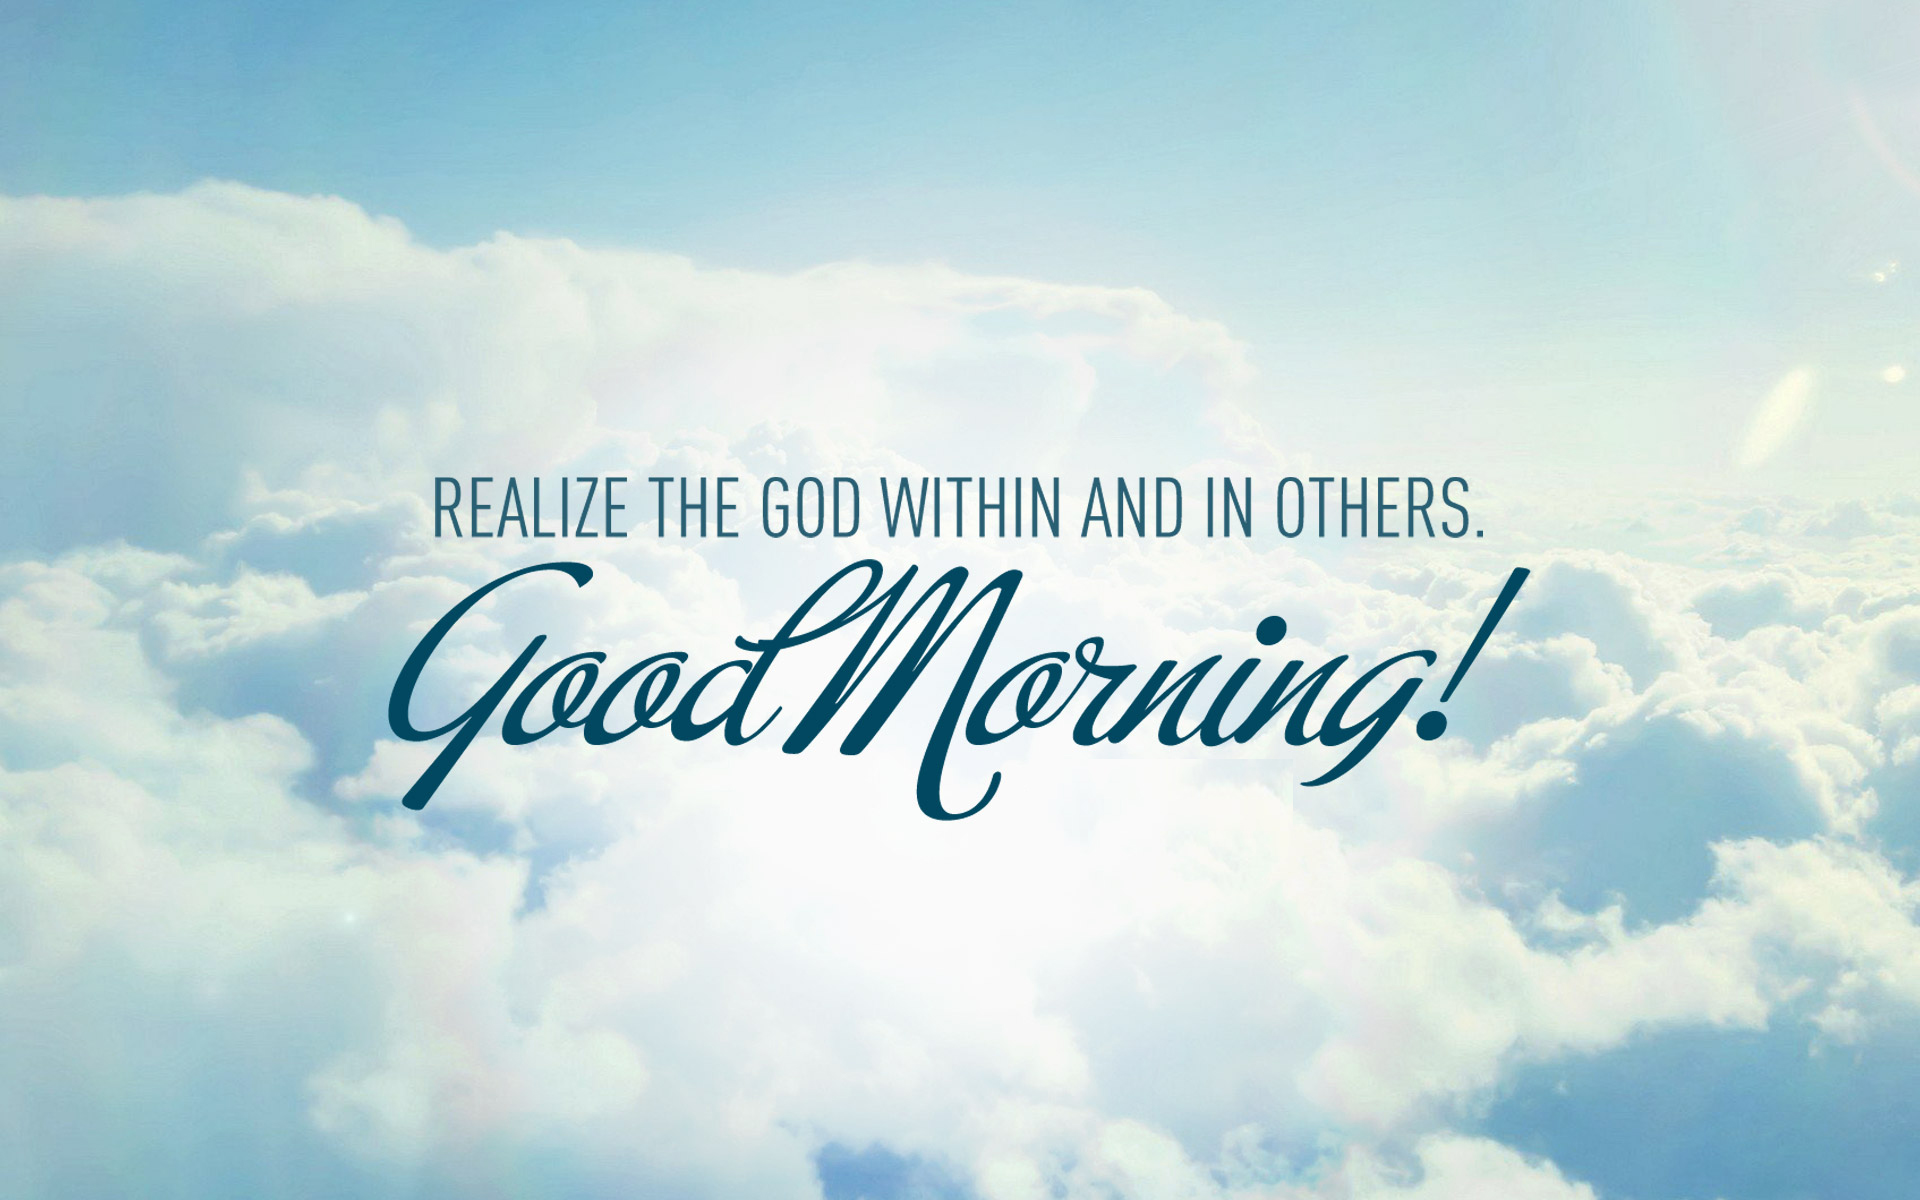 Good Morning Wishes Quotes And HD Wallpapers Good Morning Quote Wallpapers